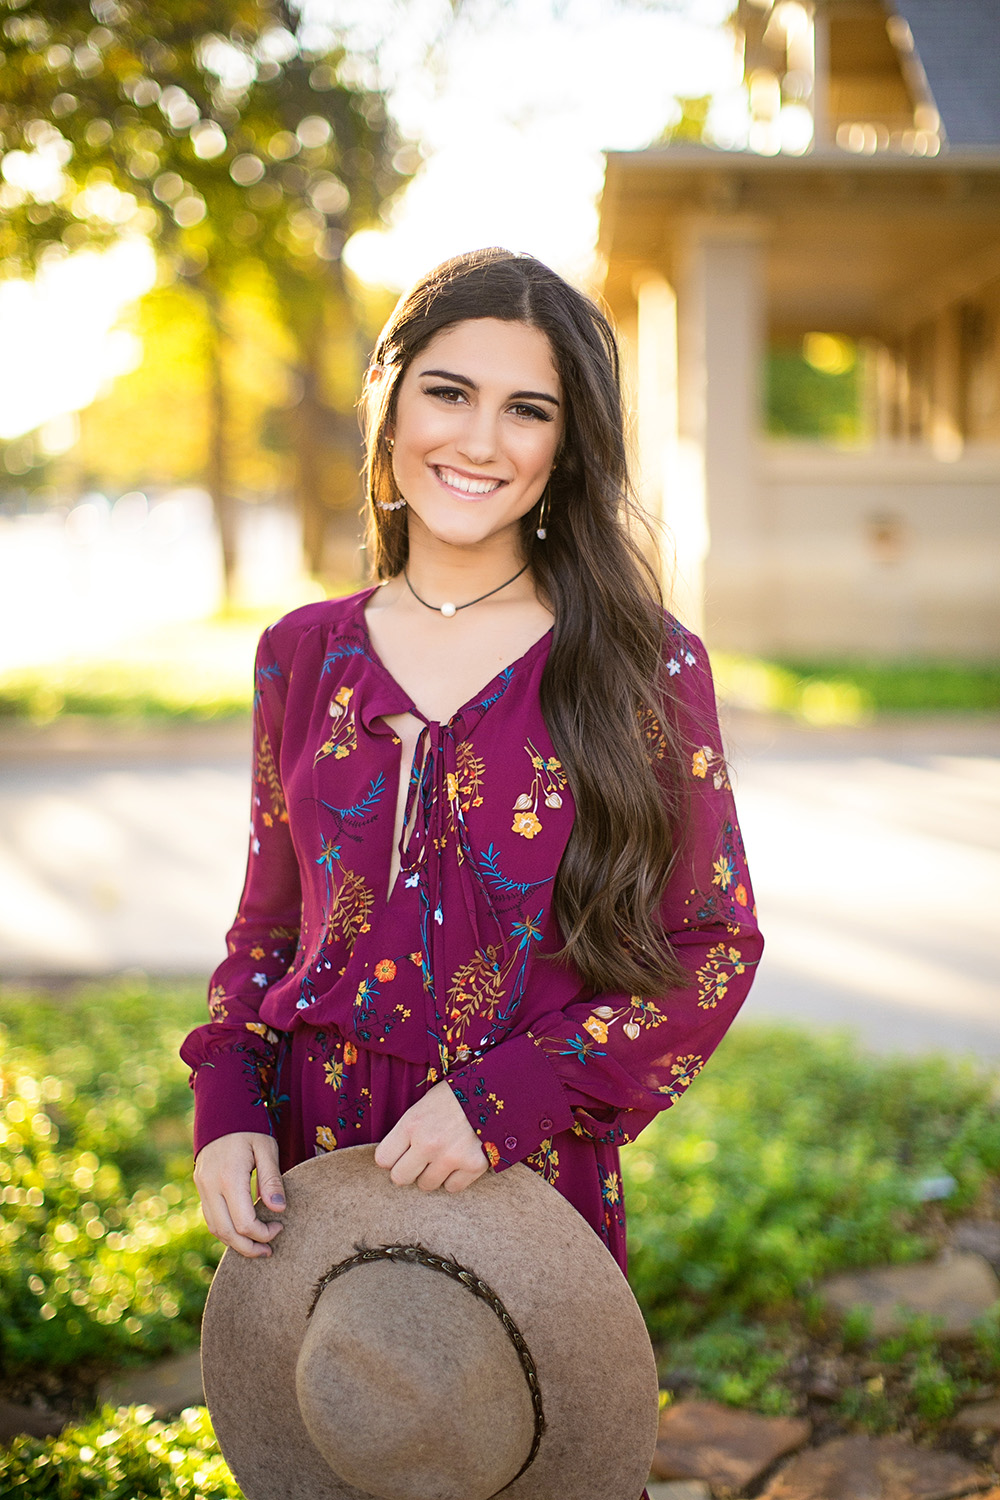 linda-mcmillan-photography-texas-tech-senior-photos-lubbock_05.JPG